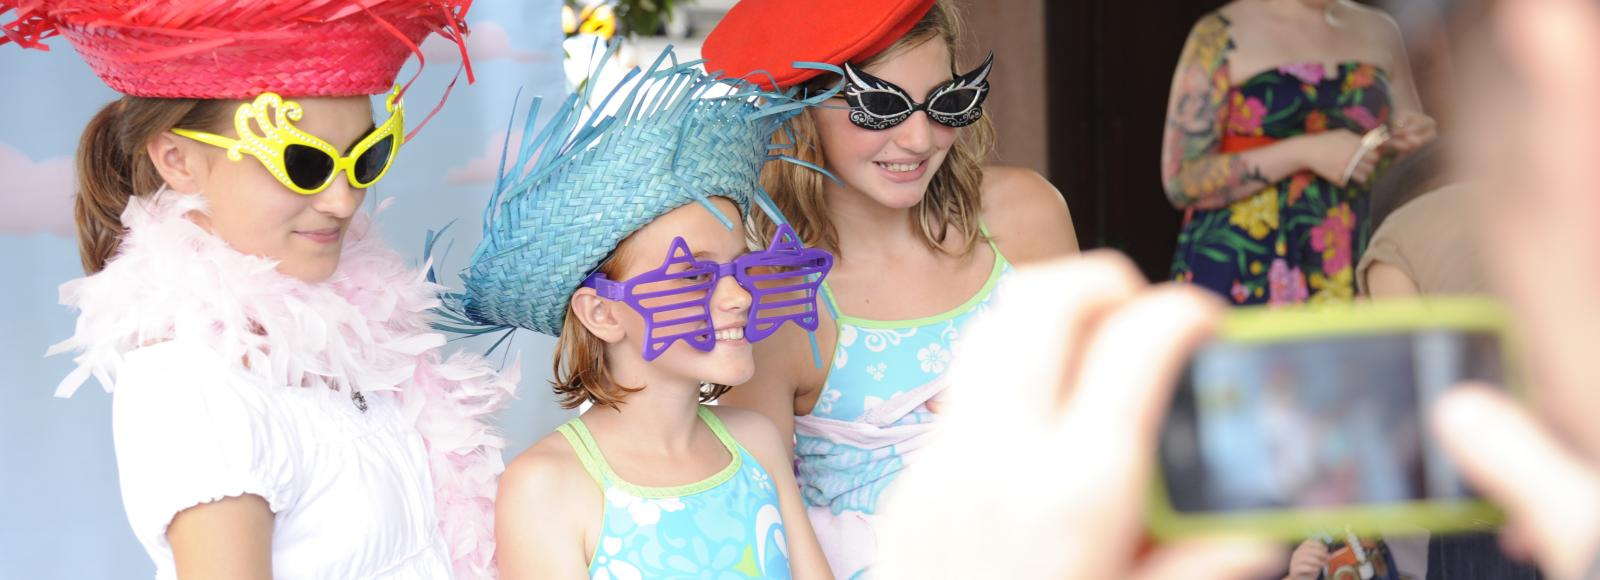 Three girls dressed up with hats and sunglasses